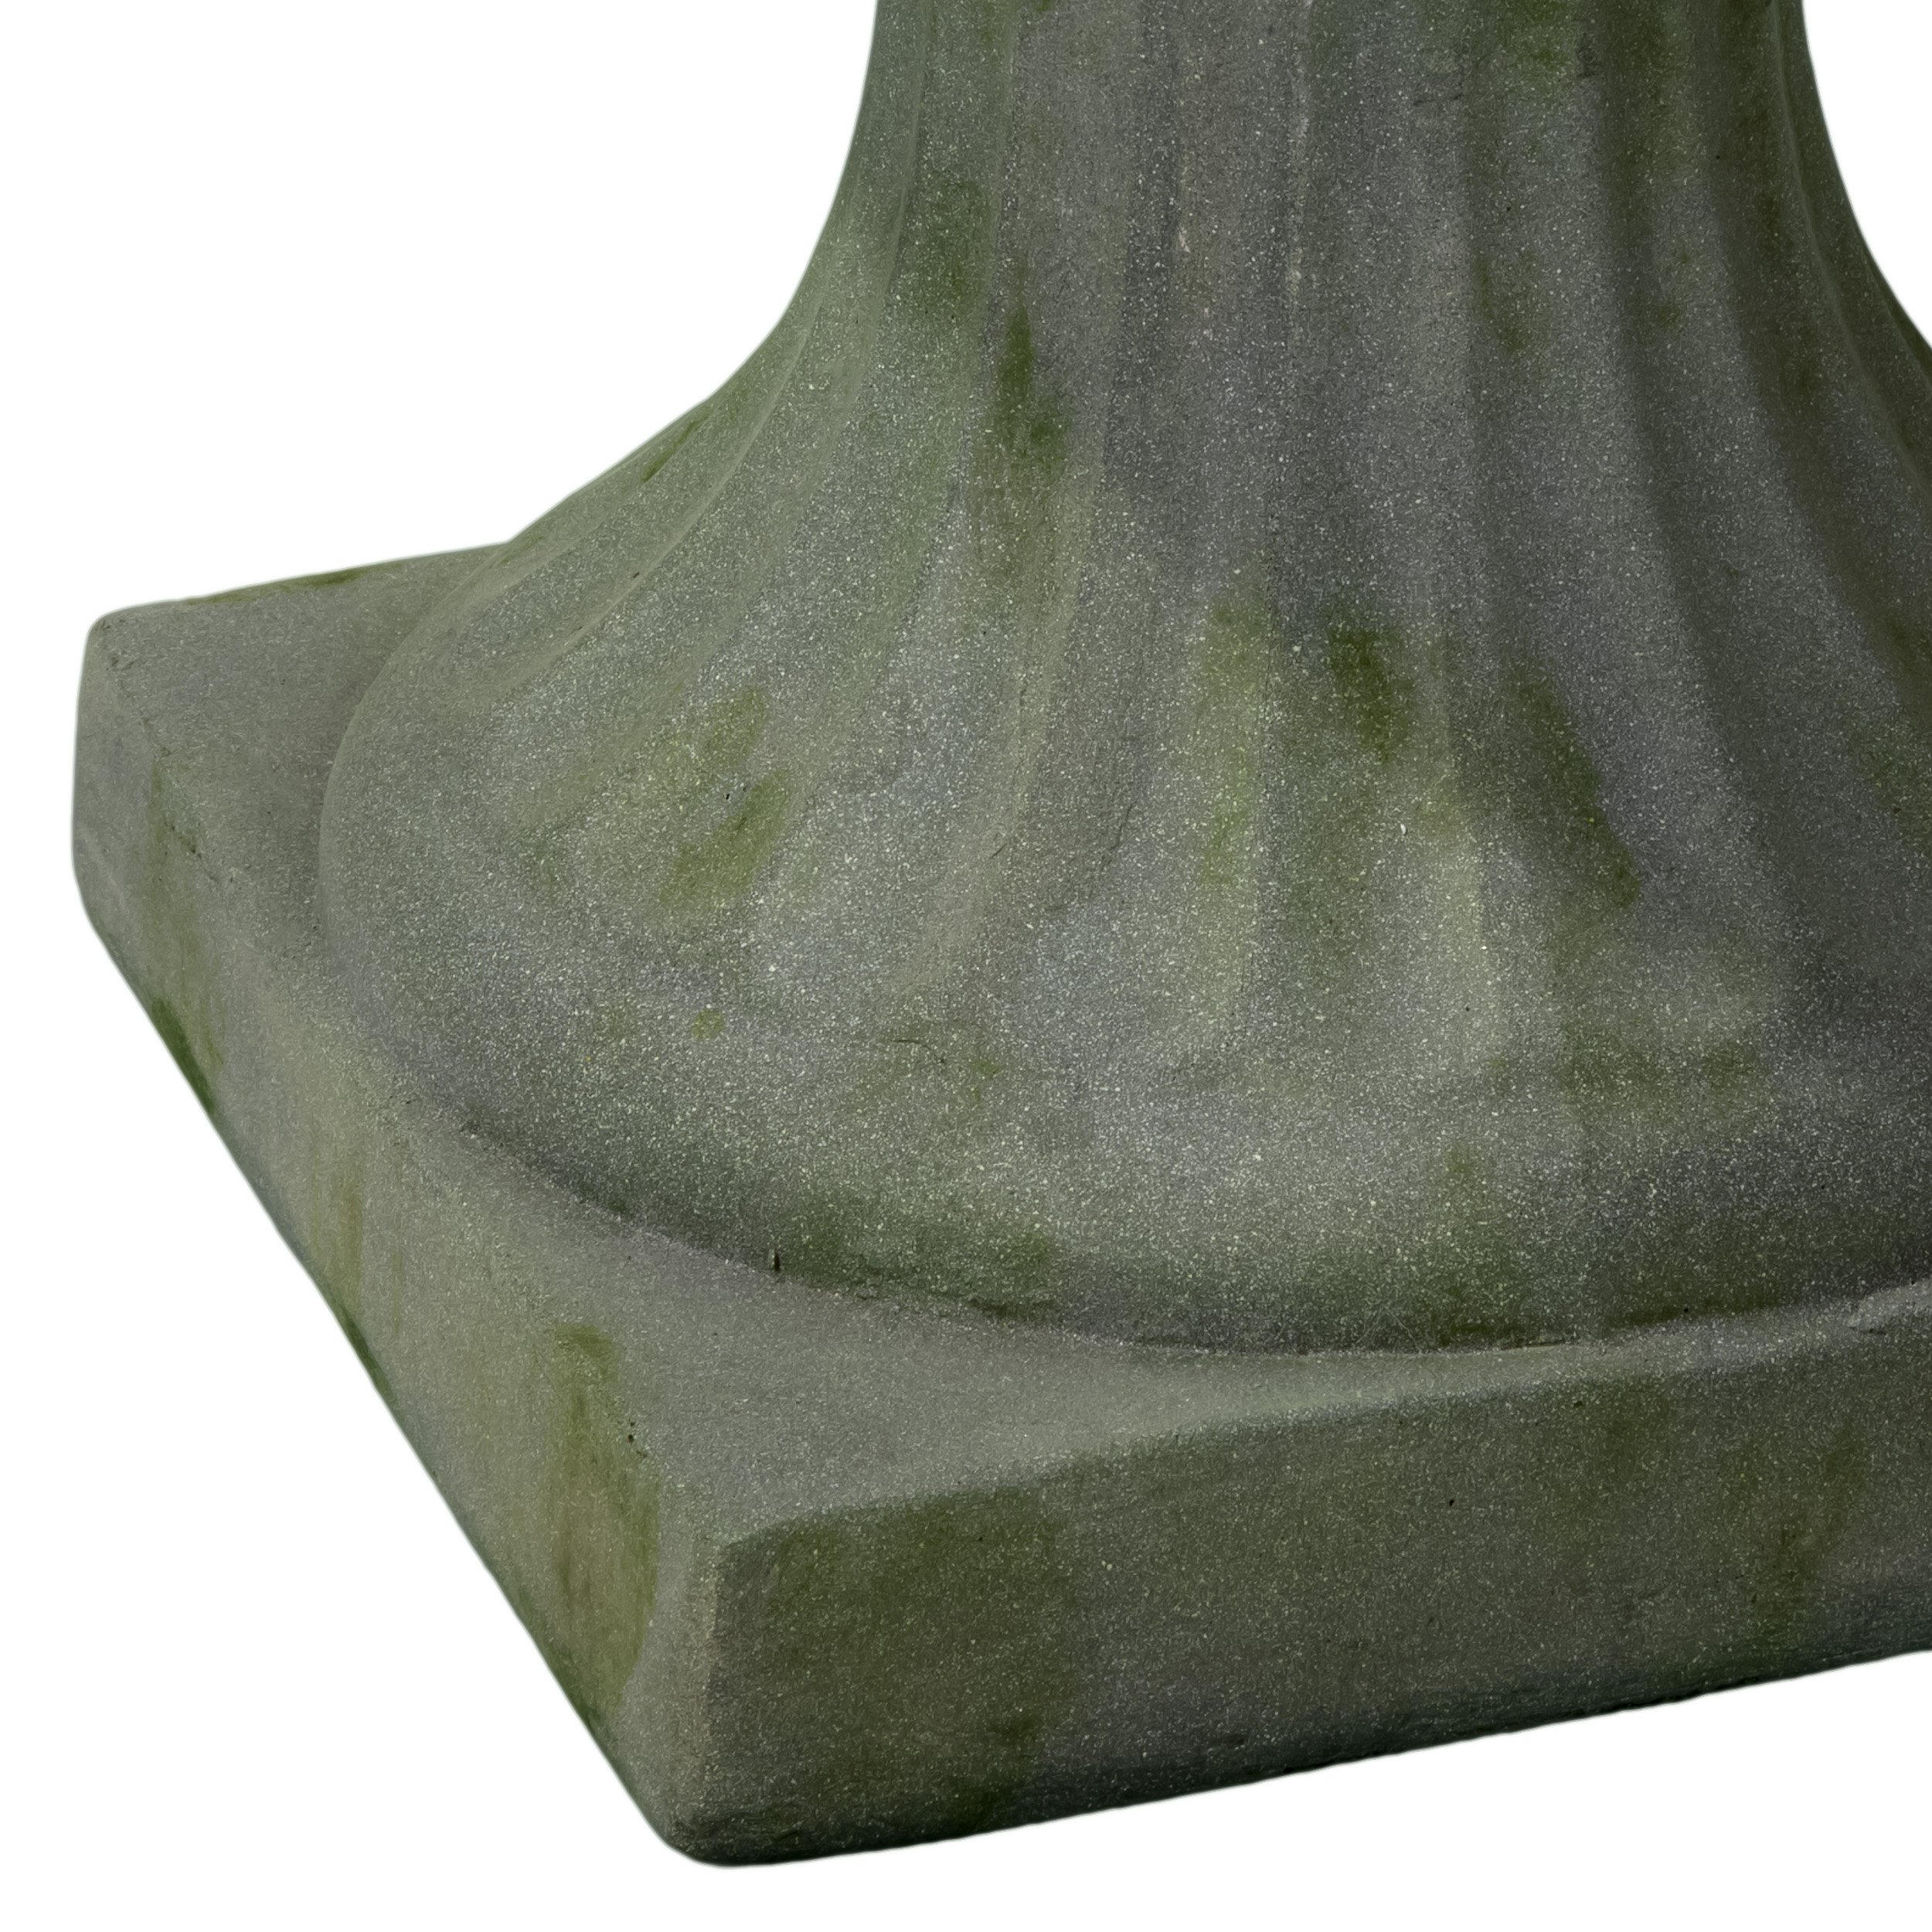 Best-selling Naples Moss Urn Planter, 22.5-Inch, Grey with Green